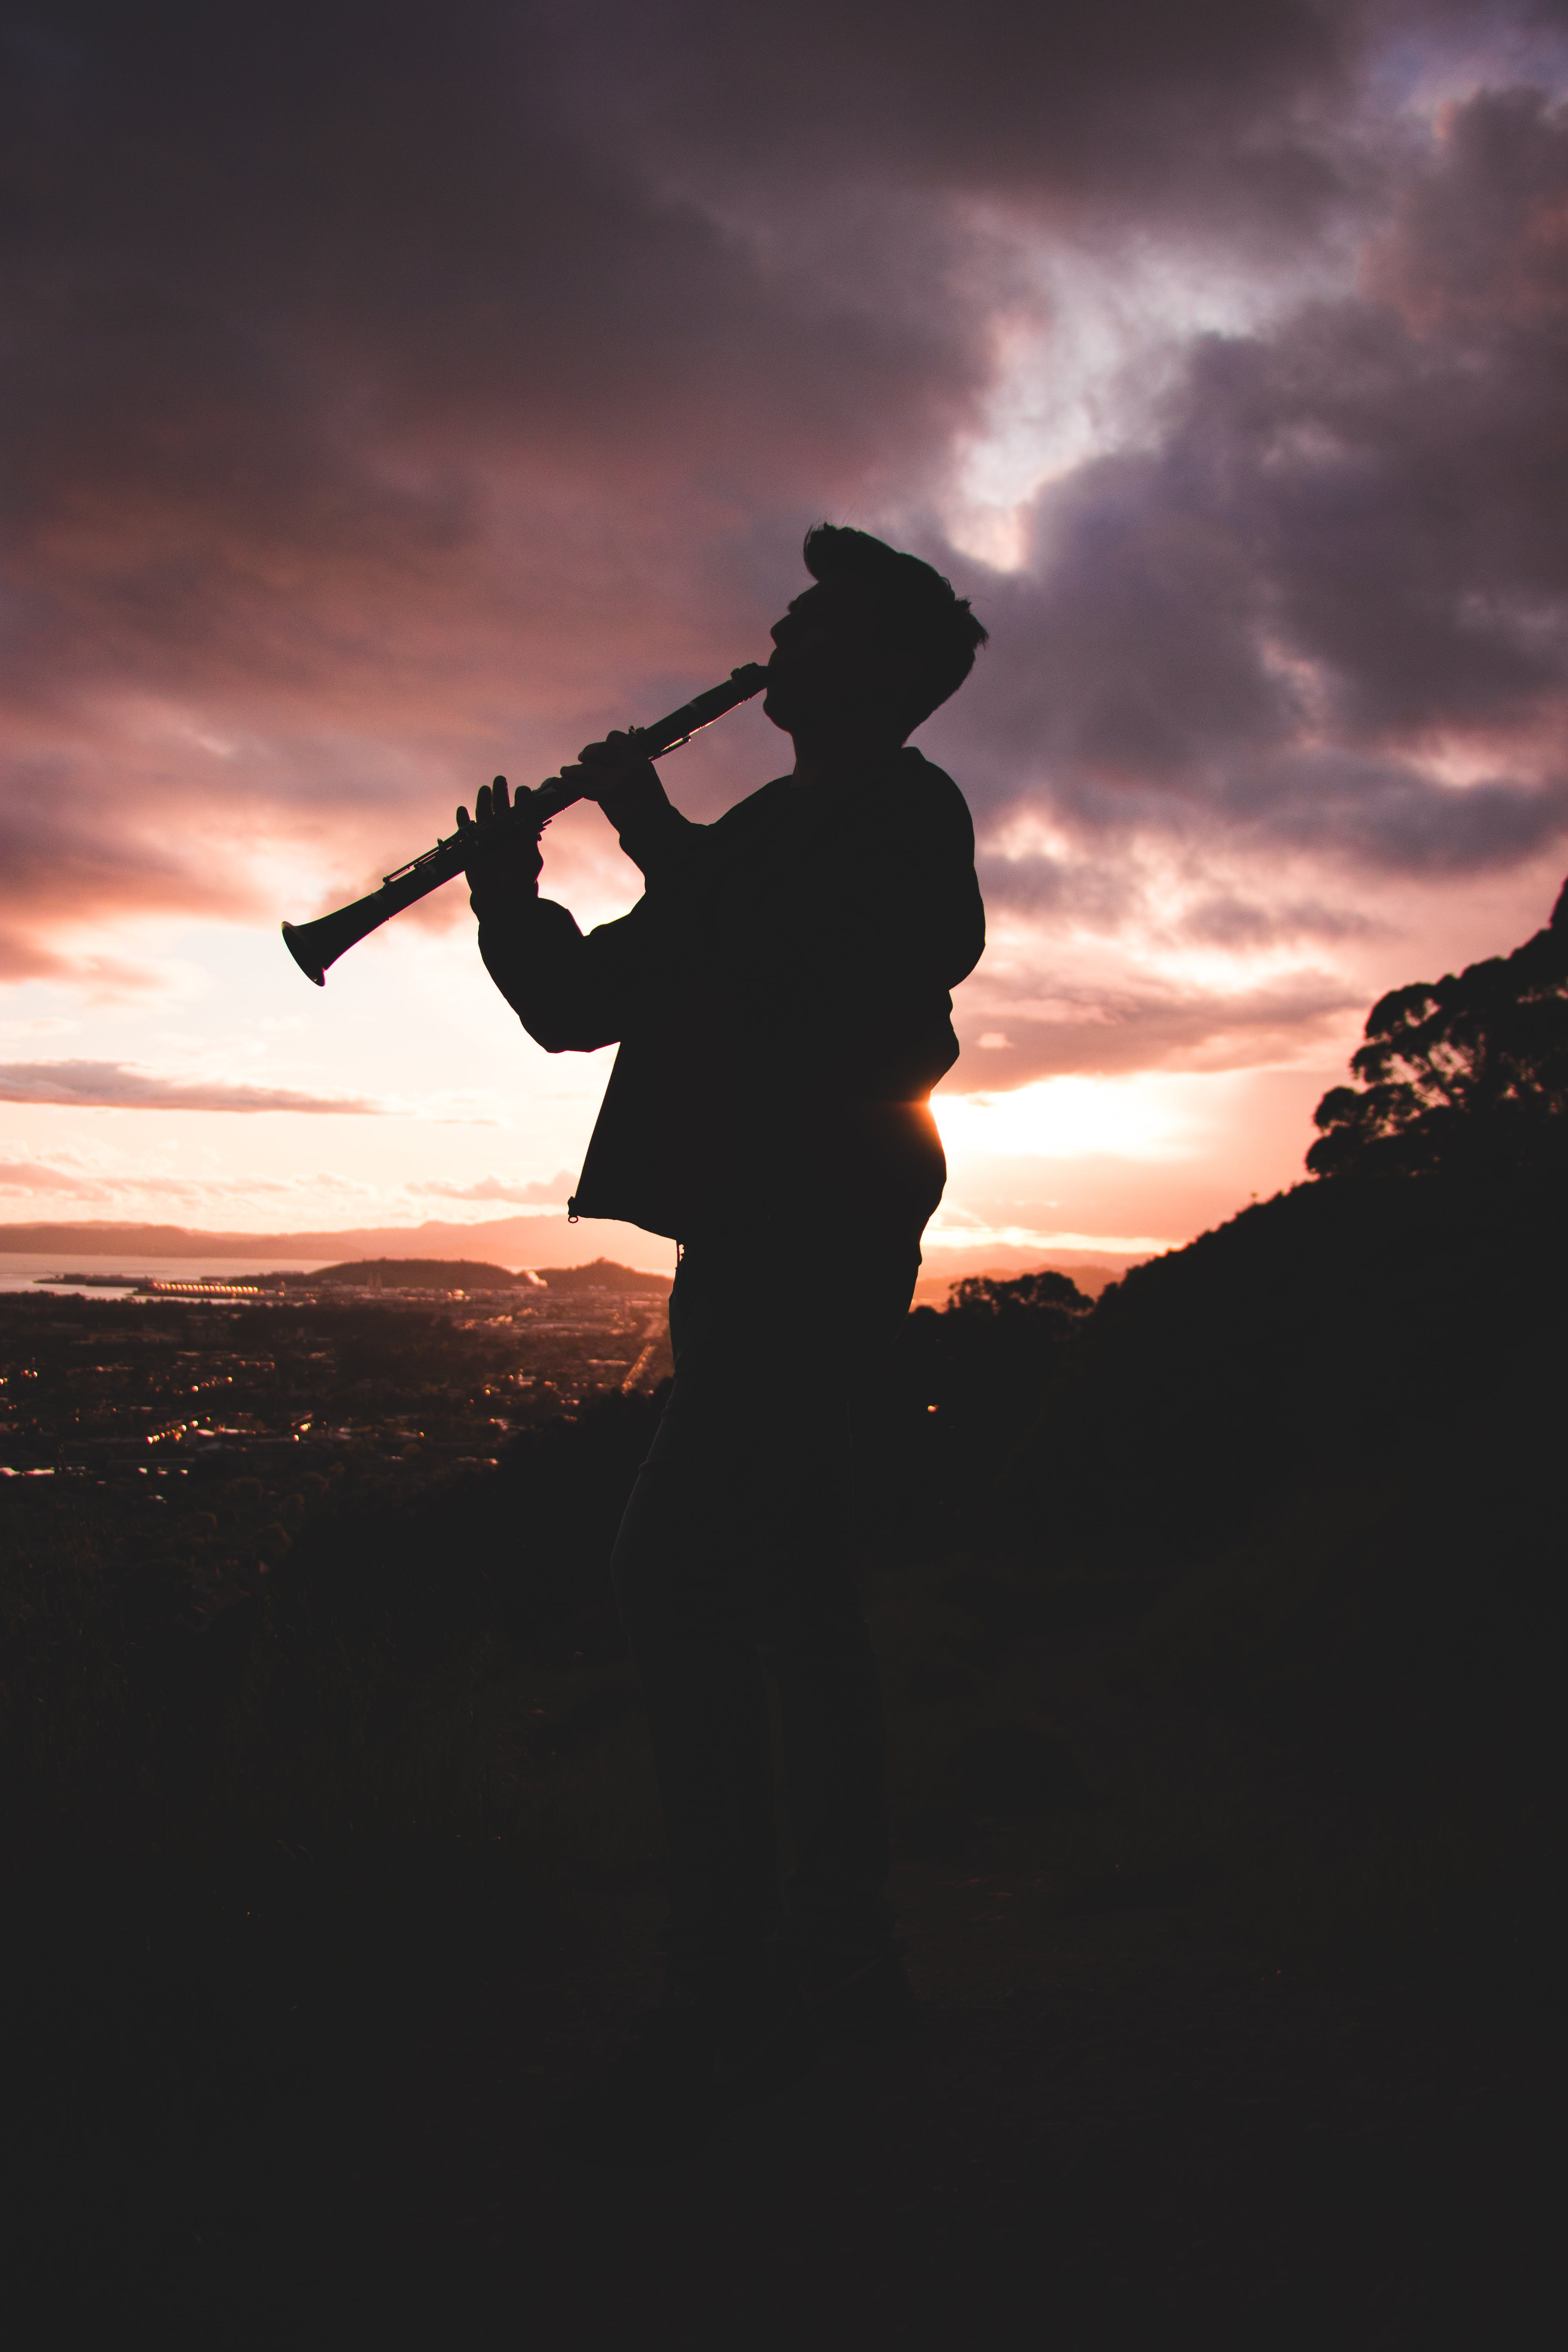 Silhouette Photo Of Person Playing Clarinet